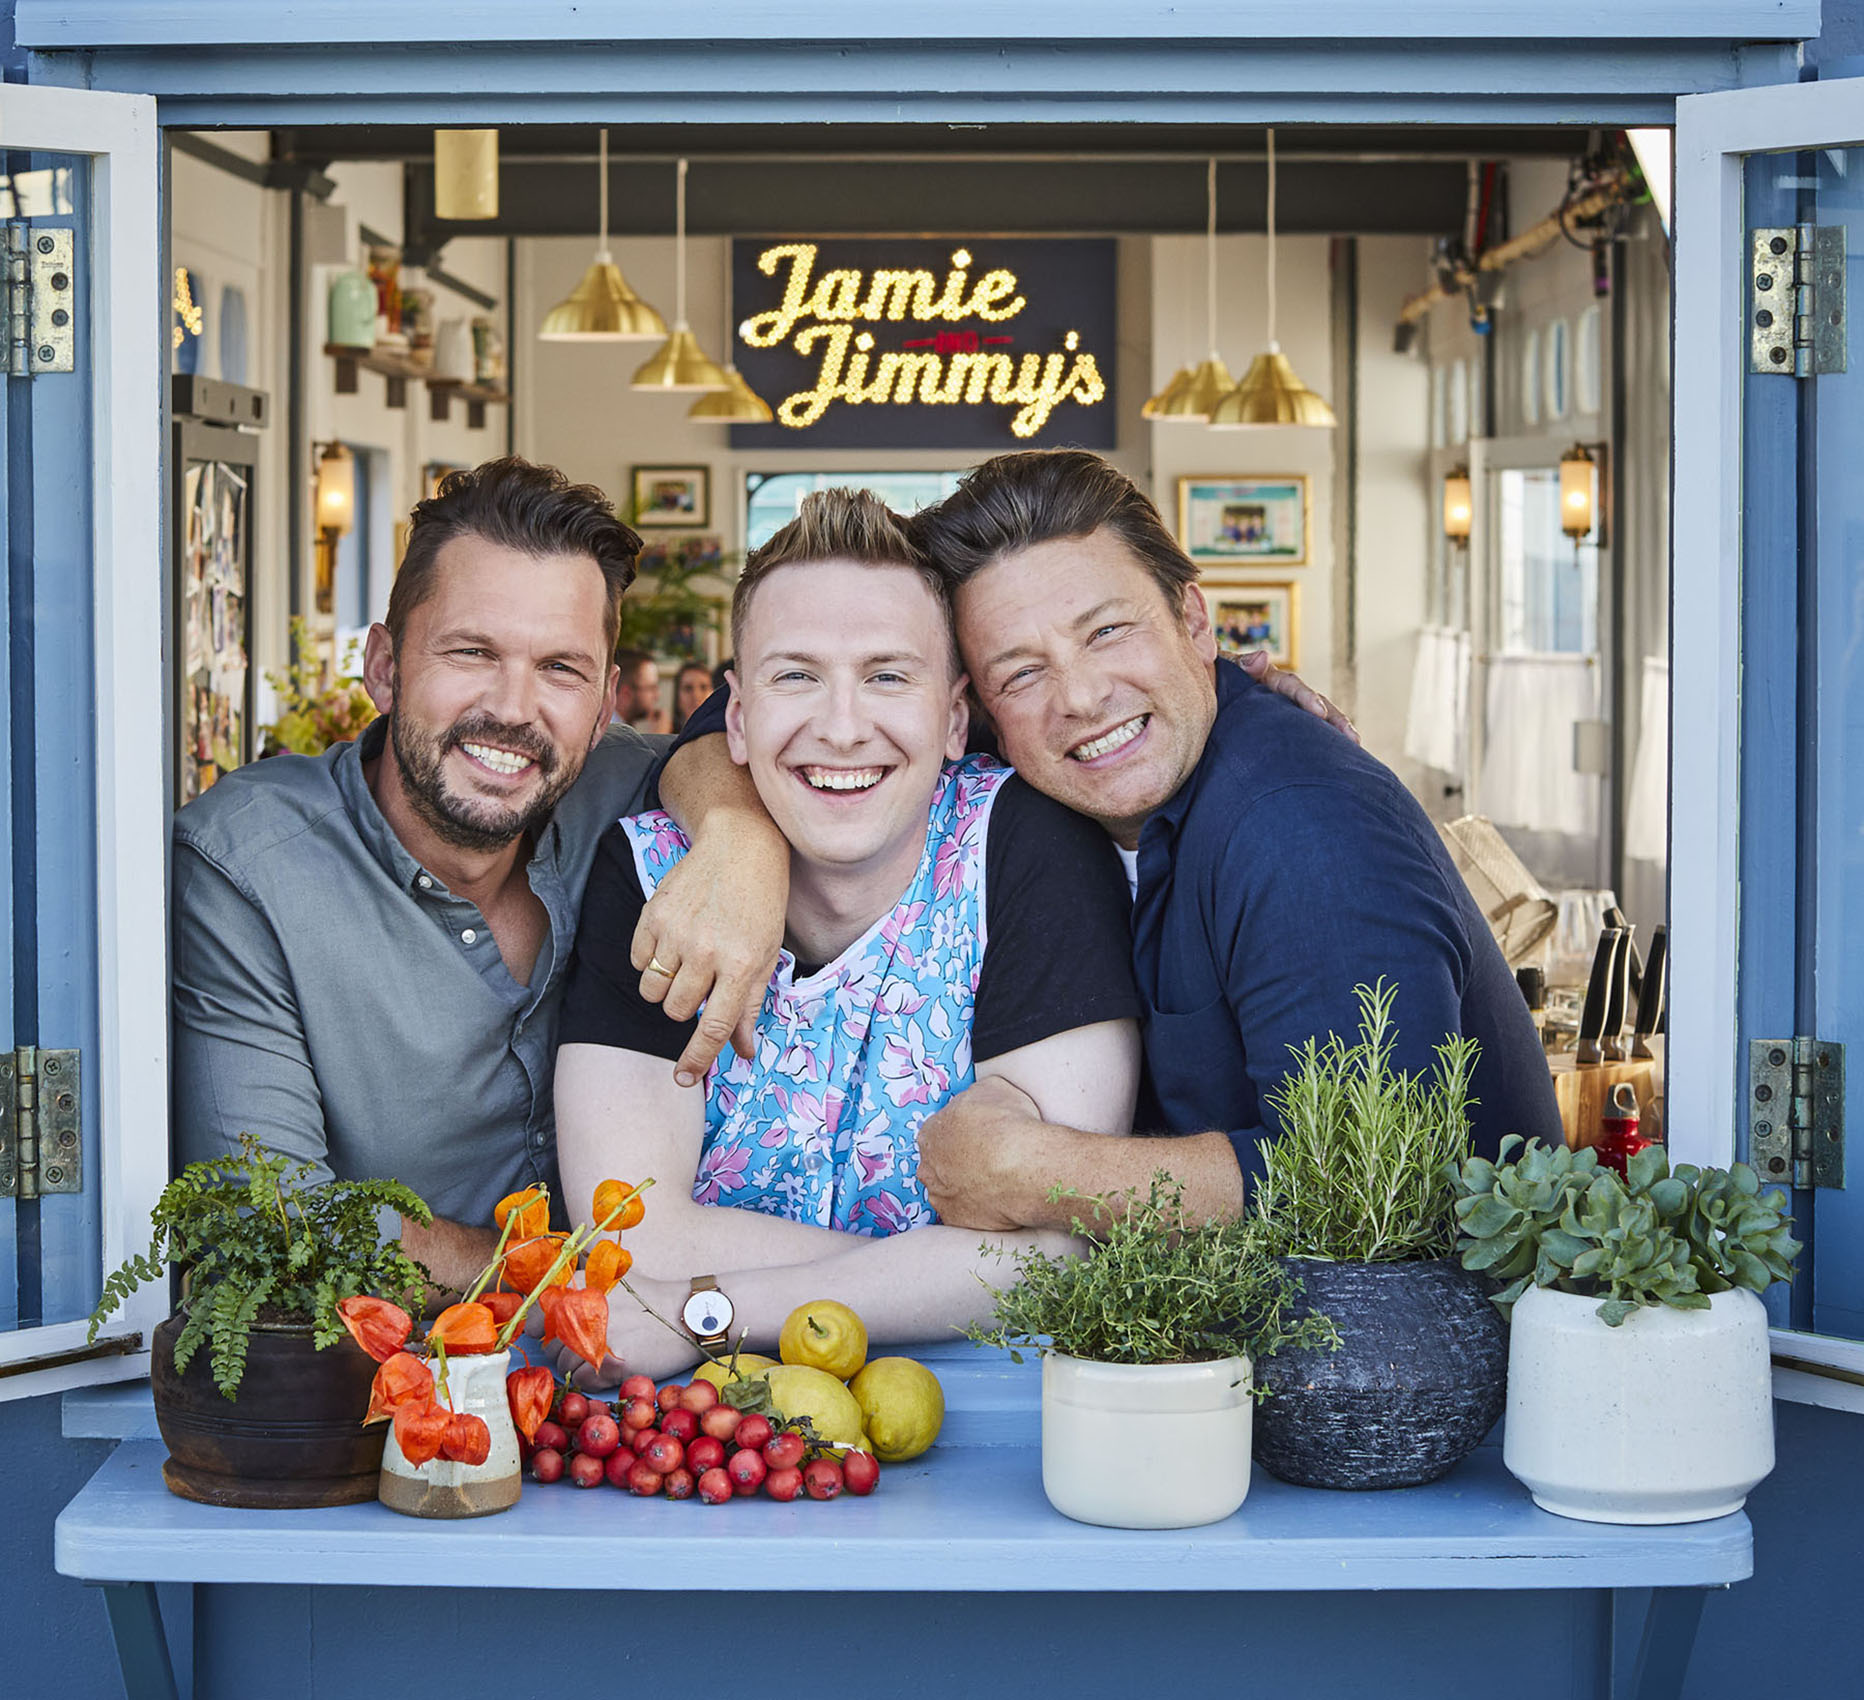 SteveRyan_Photographer_Portraits_People_FridaynightFeast_JamieOliver_JimmyDoherty_86